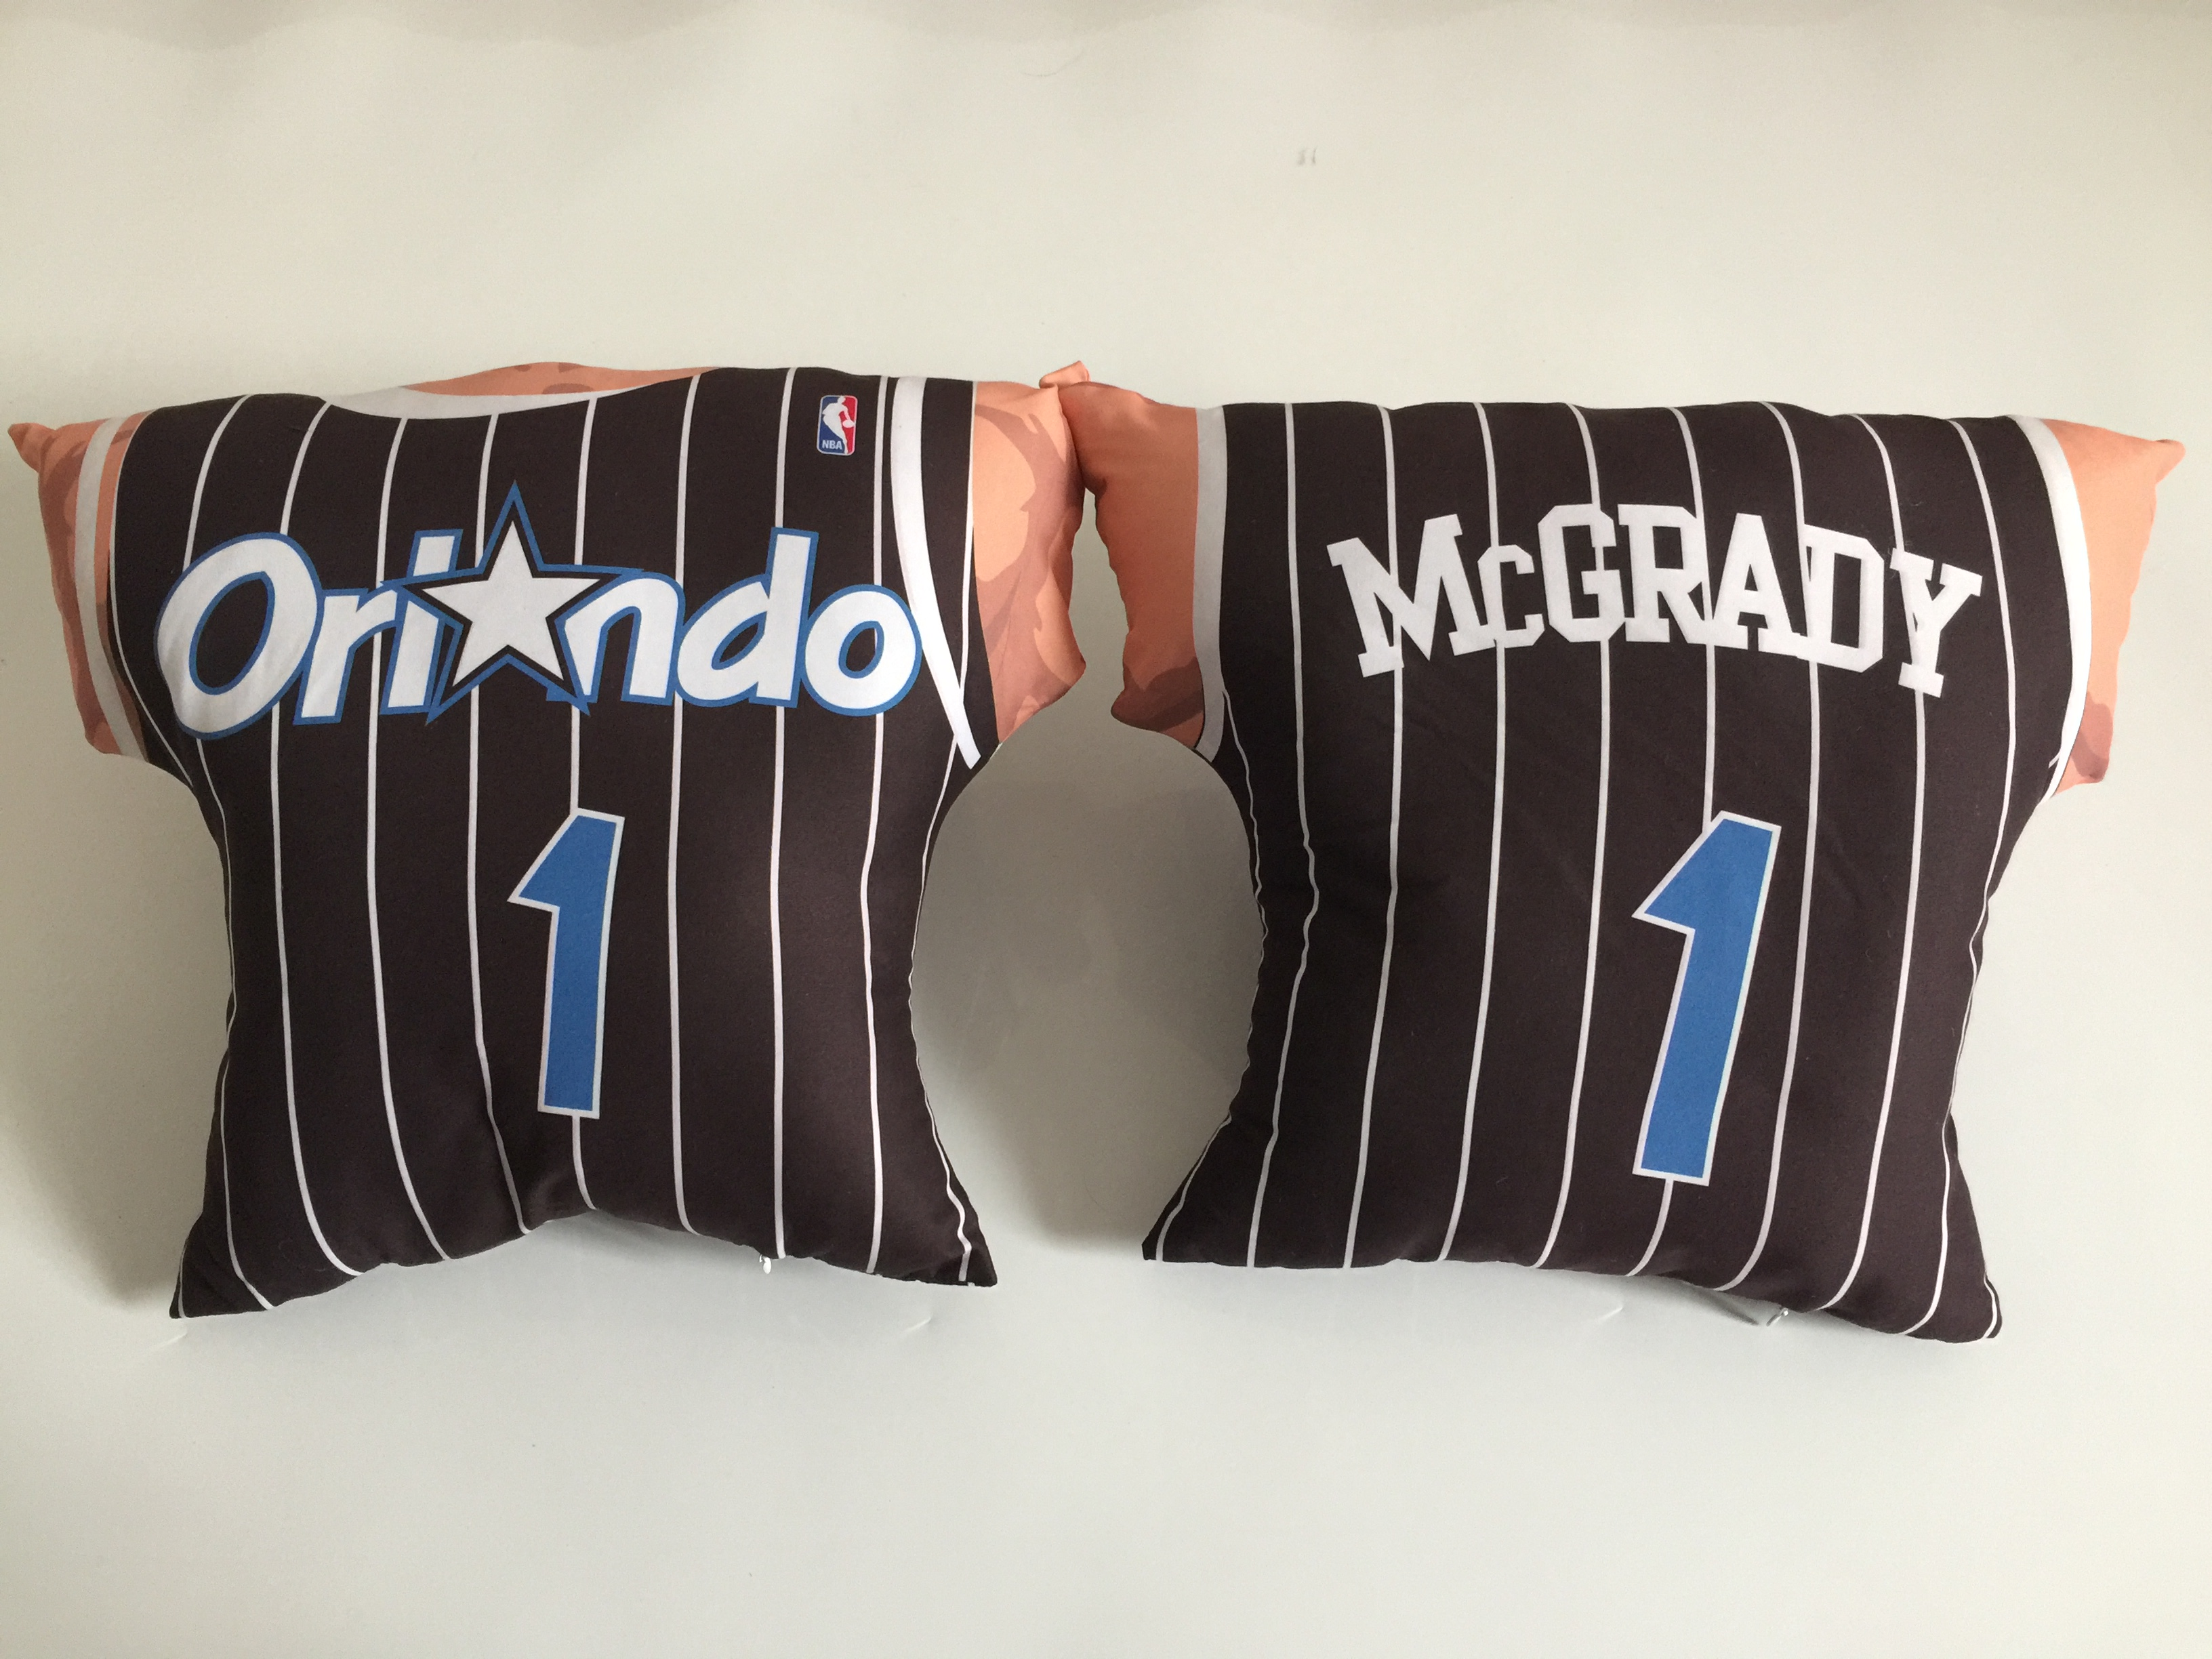 Orlando Magic 1 Tracy McGrady Black NBA Pillow